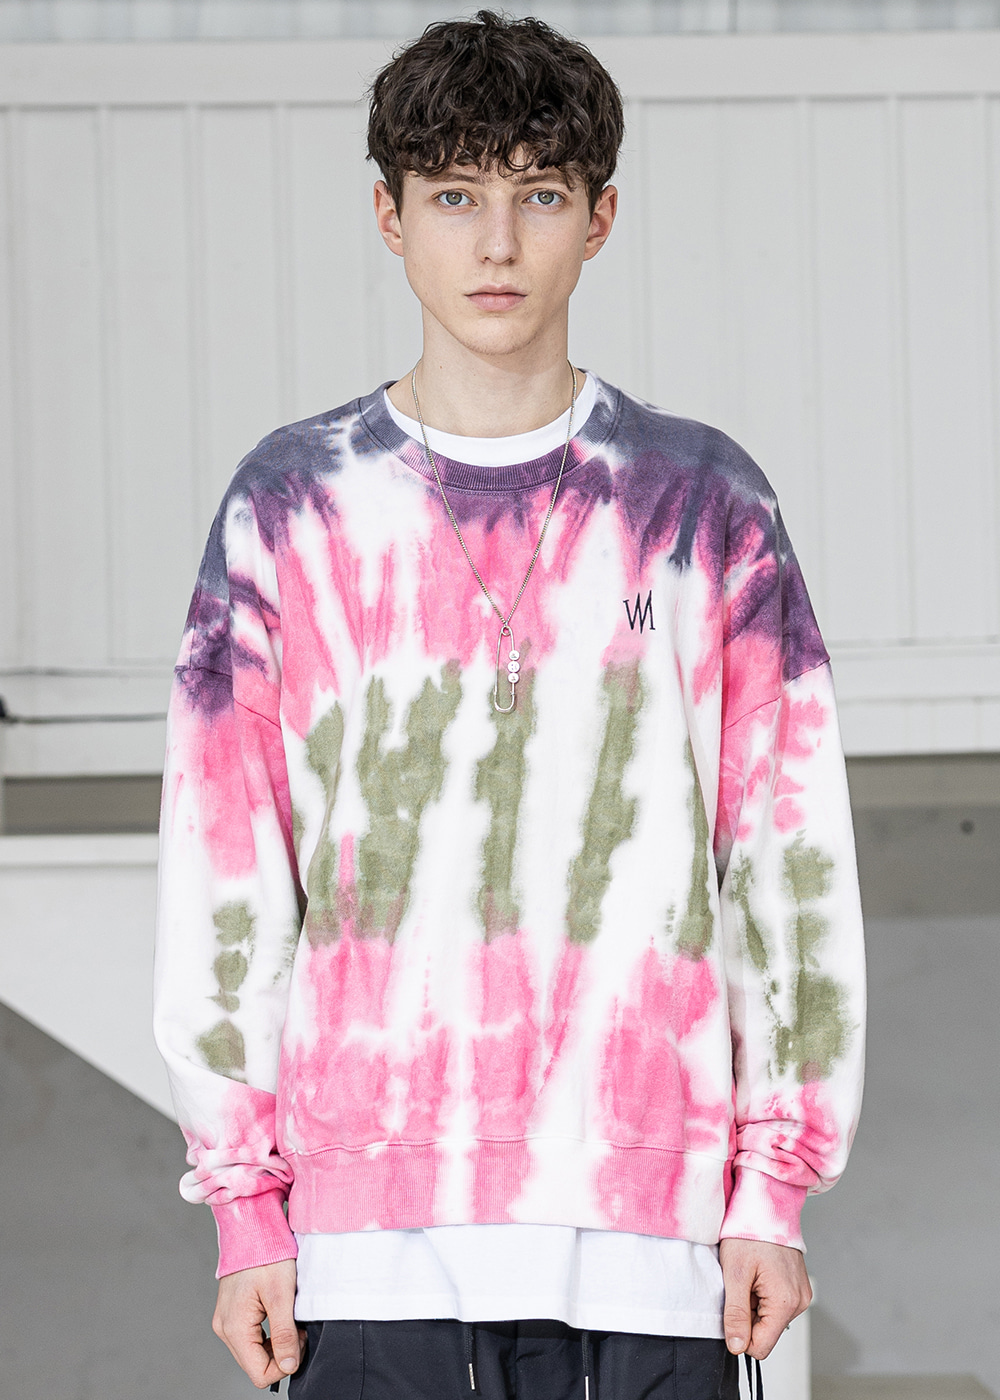 BIOLOGICAL TYE-DYE CREWNECK MSZCR002-PK